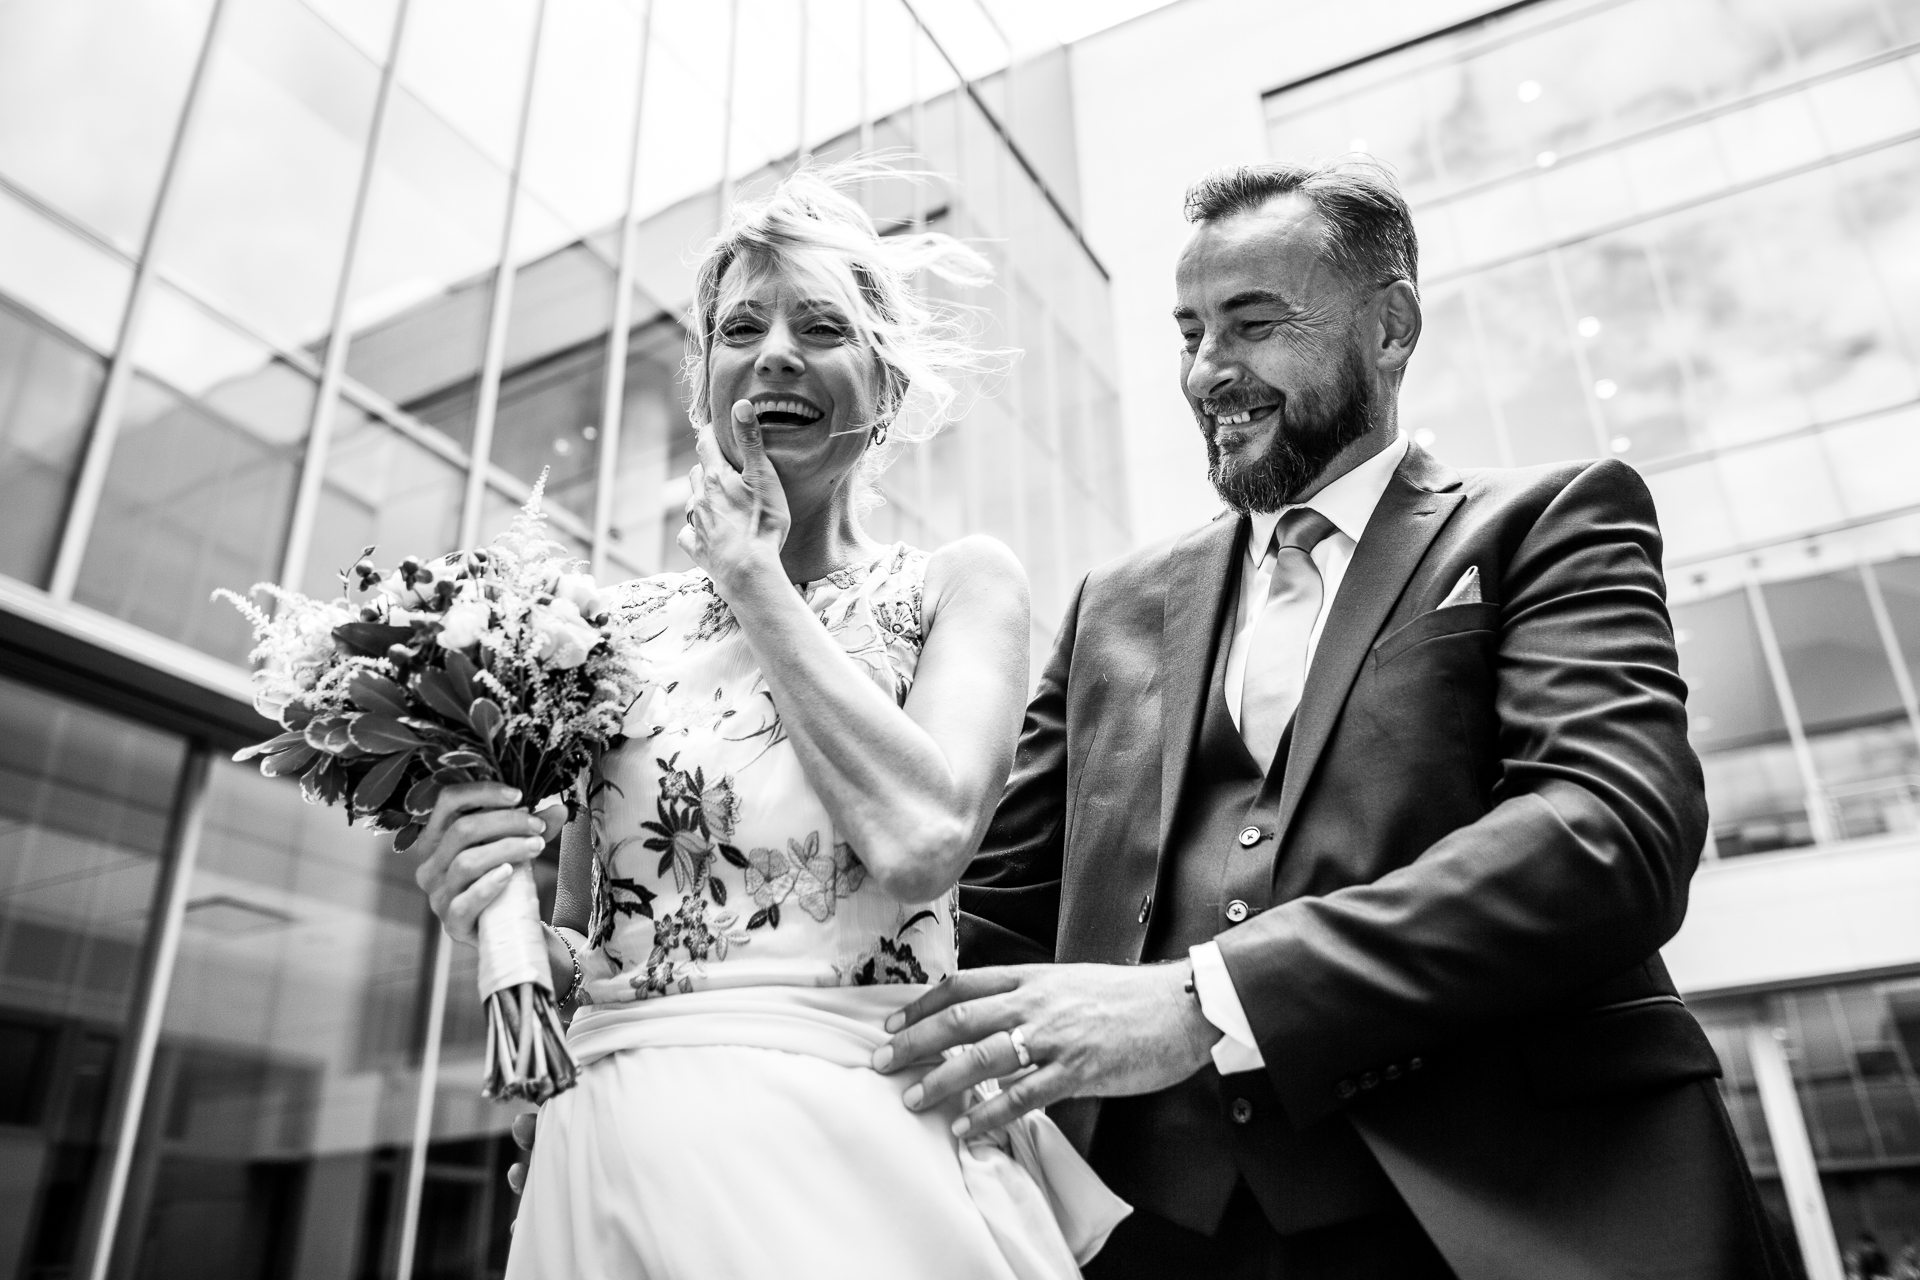 Ontario, Canada Elopement Bride and Groom Picture | A look of relief and joy after the ceremony